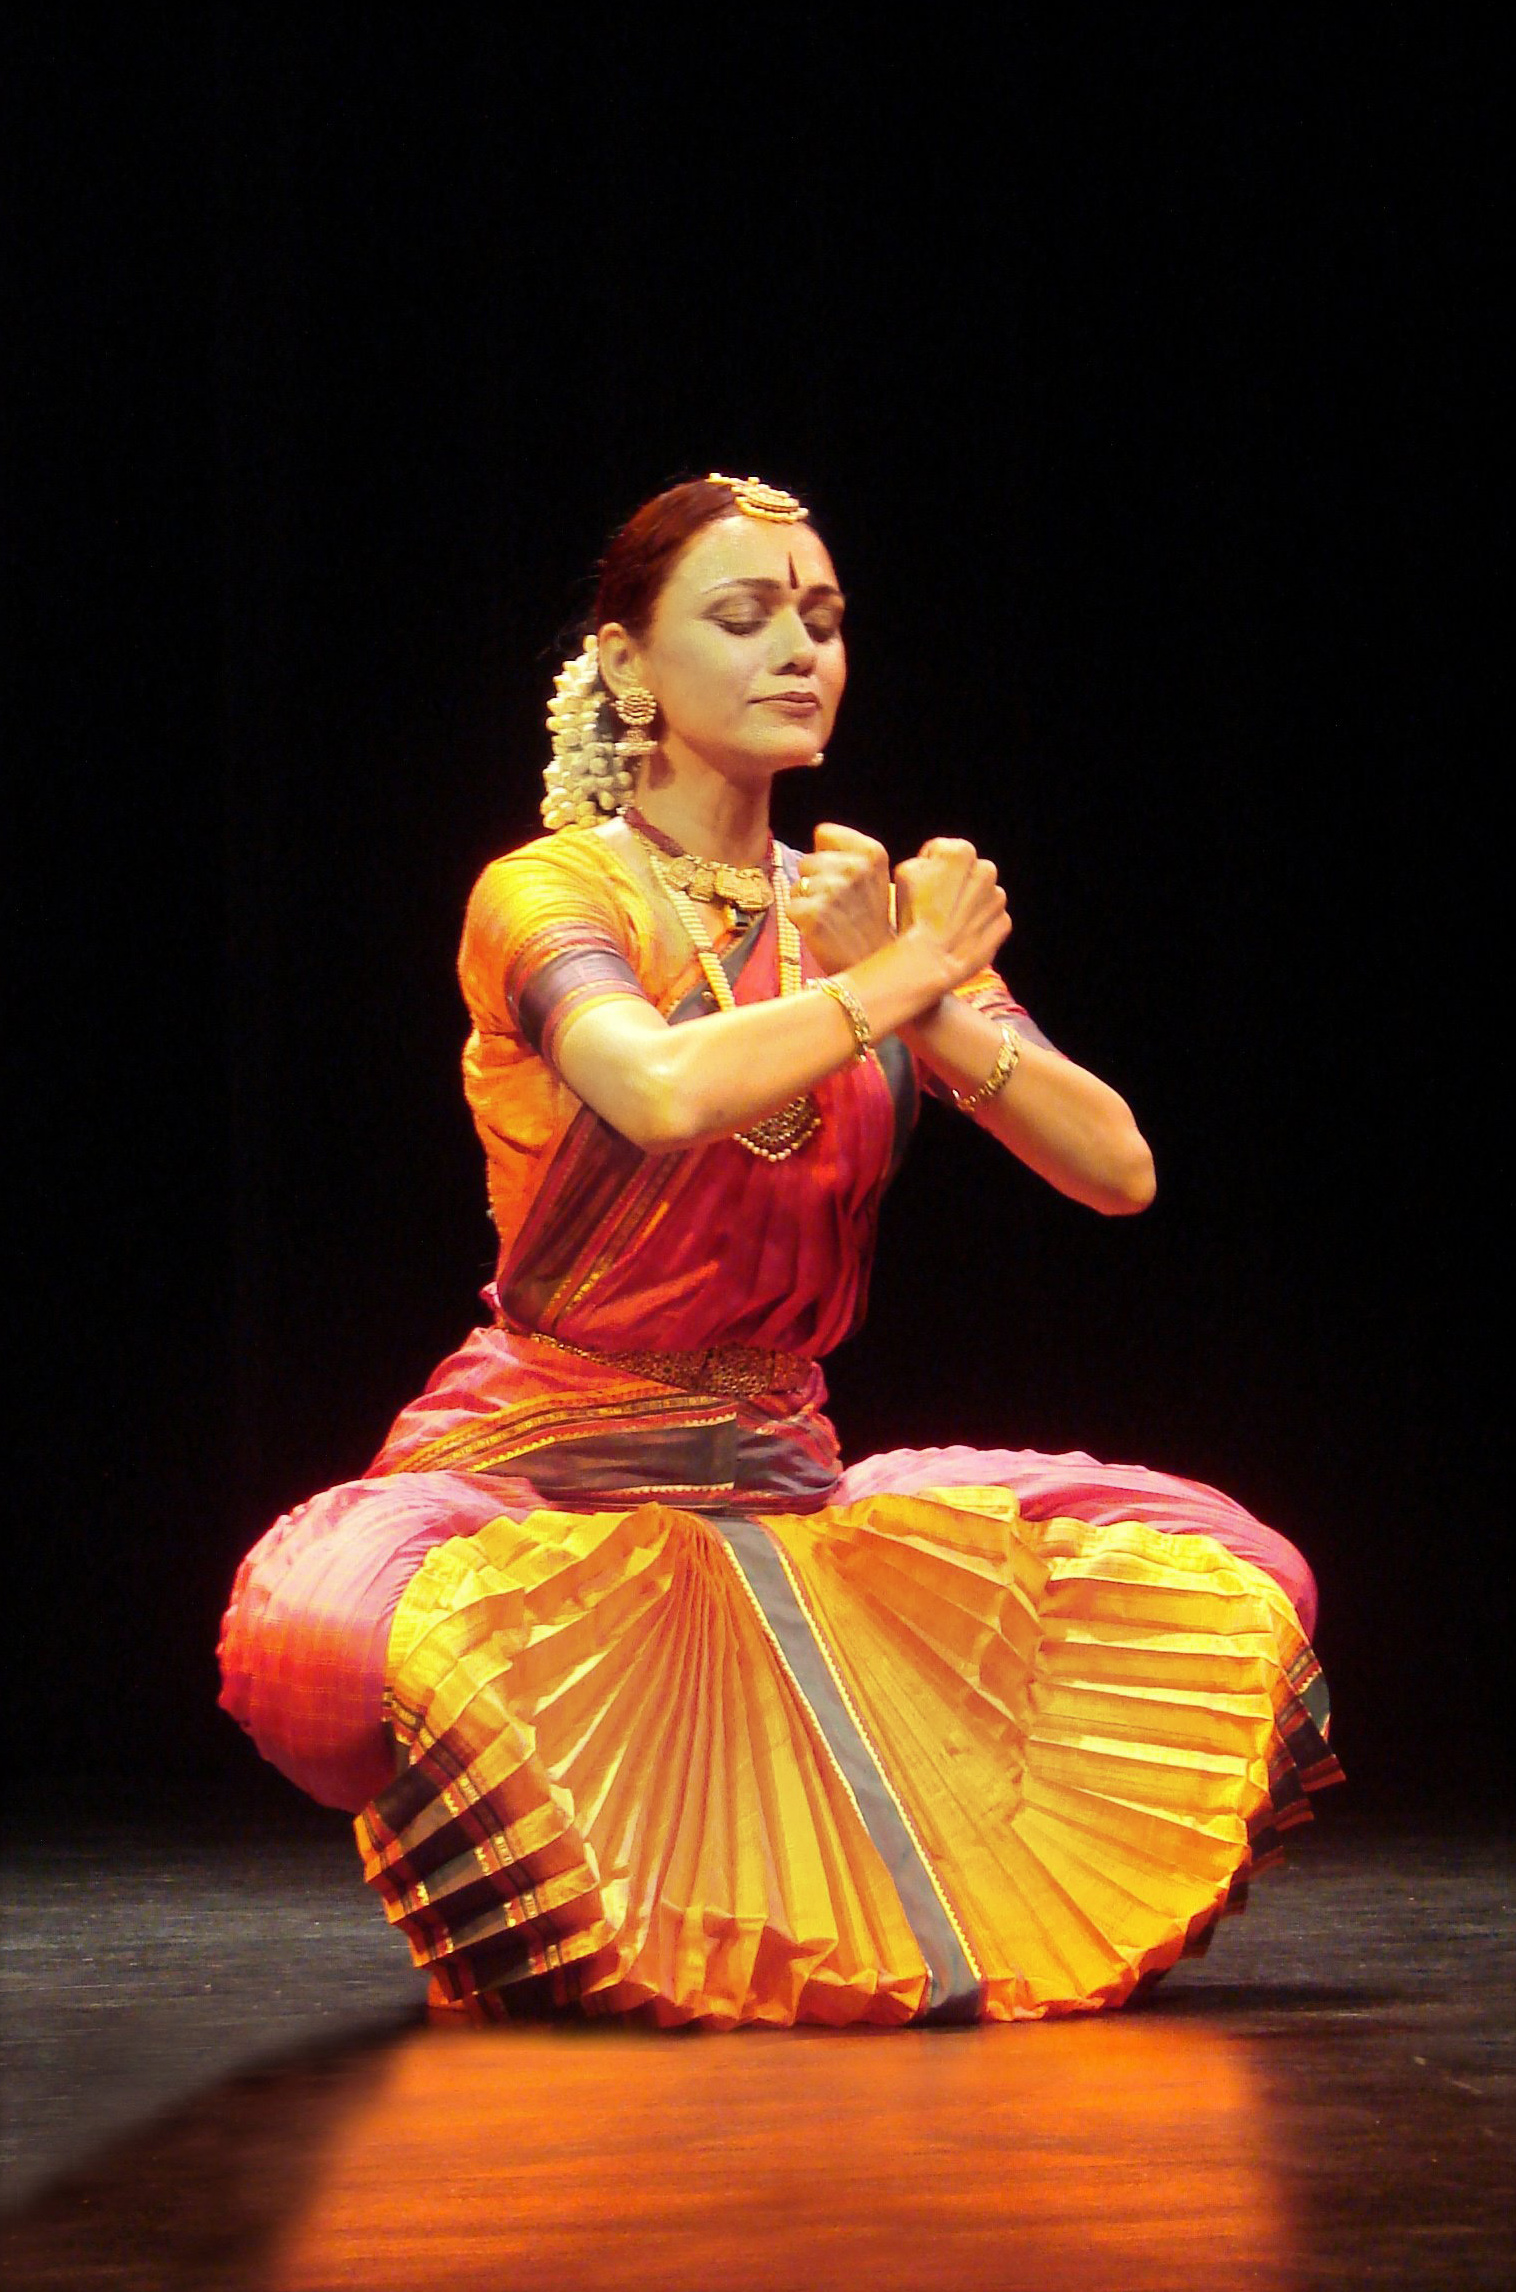 Description Bharatanatyam danseuse.jpg